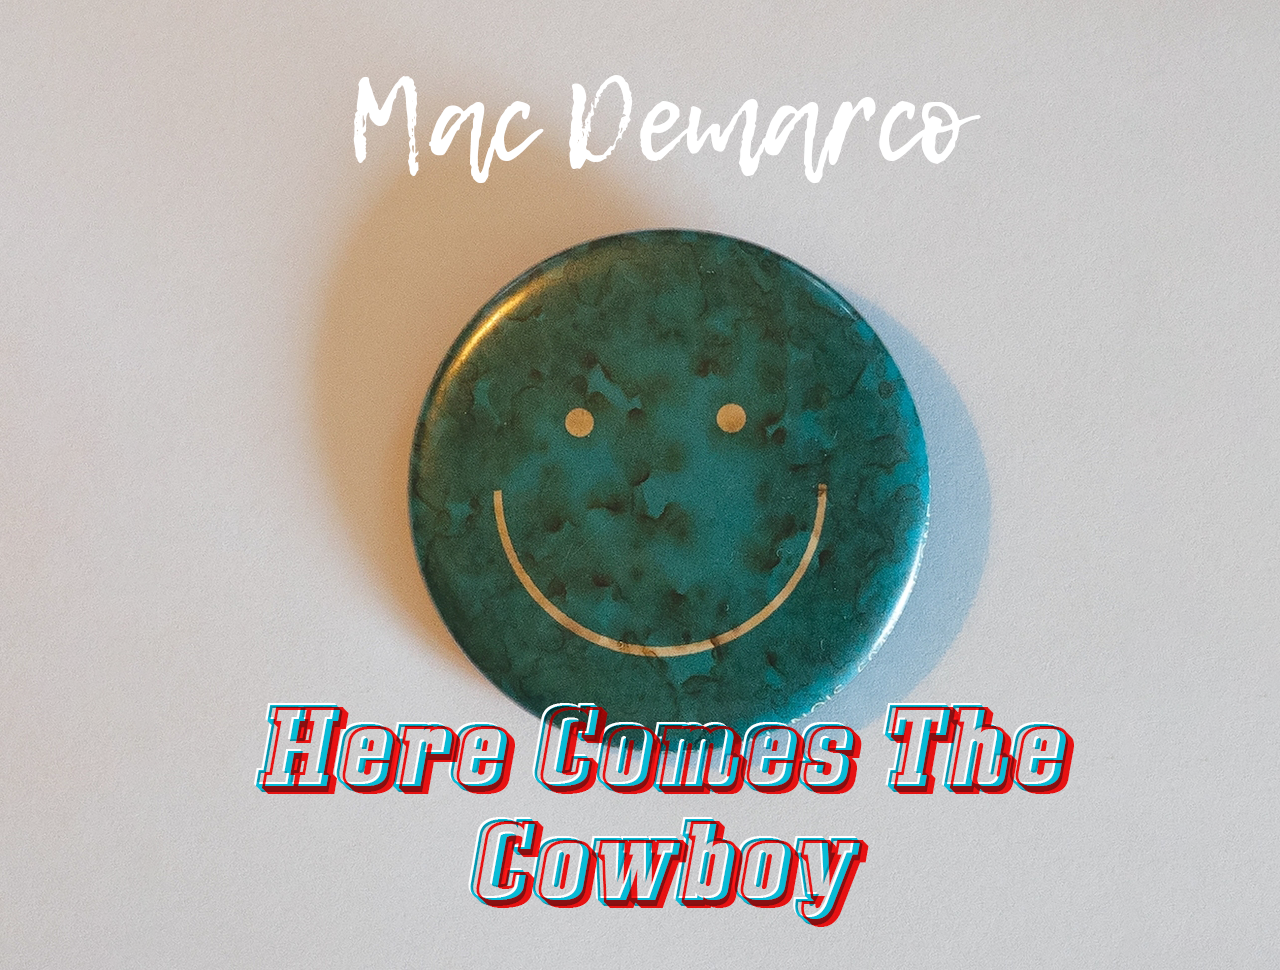 Here Comes The Cowboy; albumas; apžvalga; Mac Demarco;